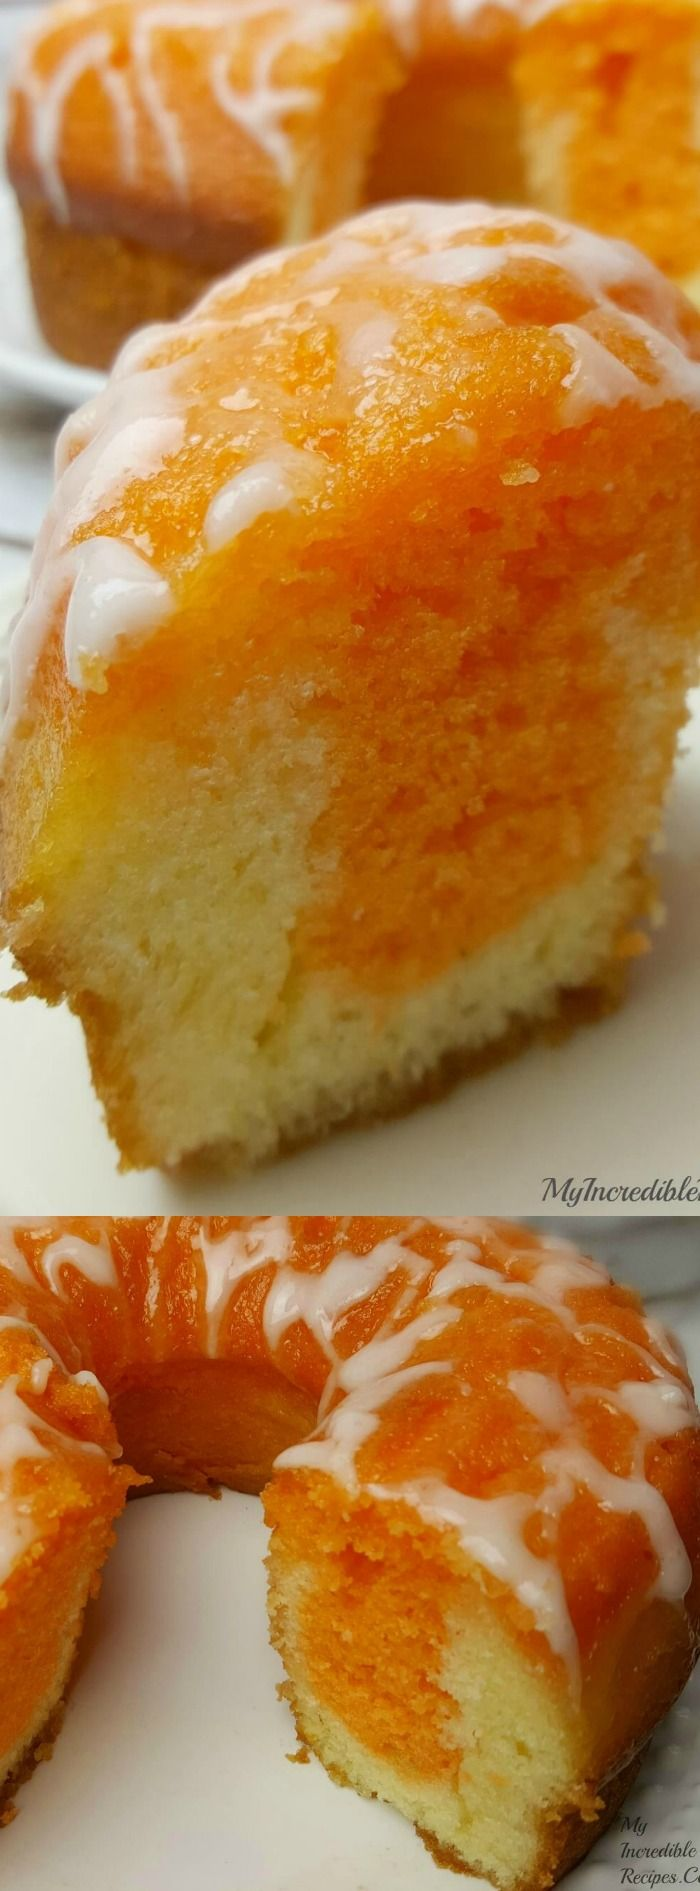 This Orange Creamsicle Cake from My Incredible Recipes is an orange lovers dream come true. It is SO easy to make and uses a secret ingredient that makes the cake light, fluffy and gives it a special orange flavor.